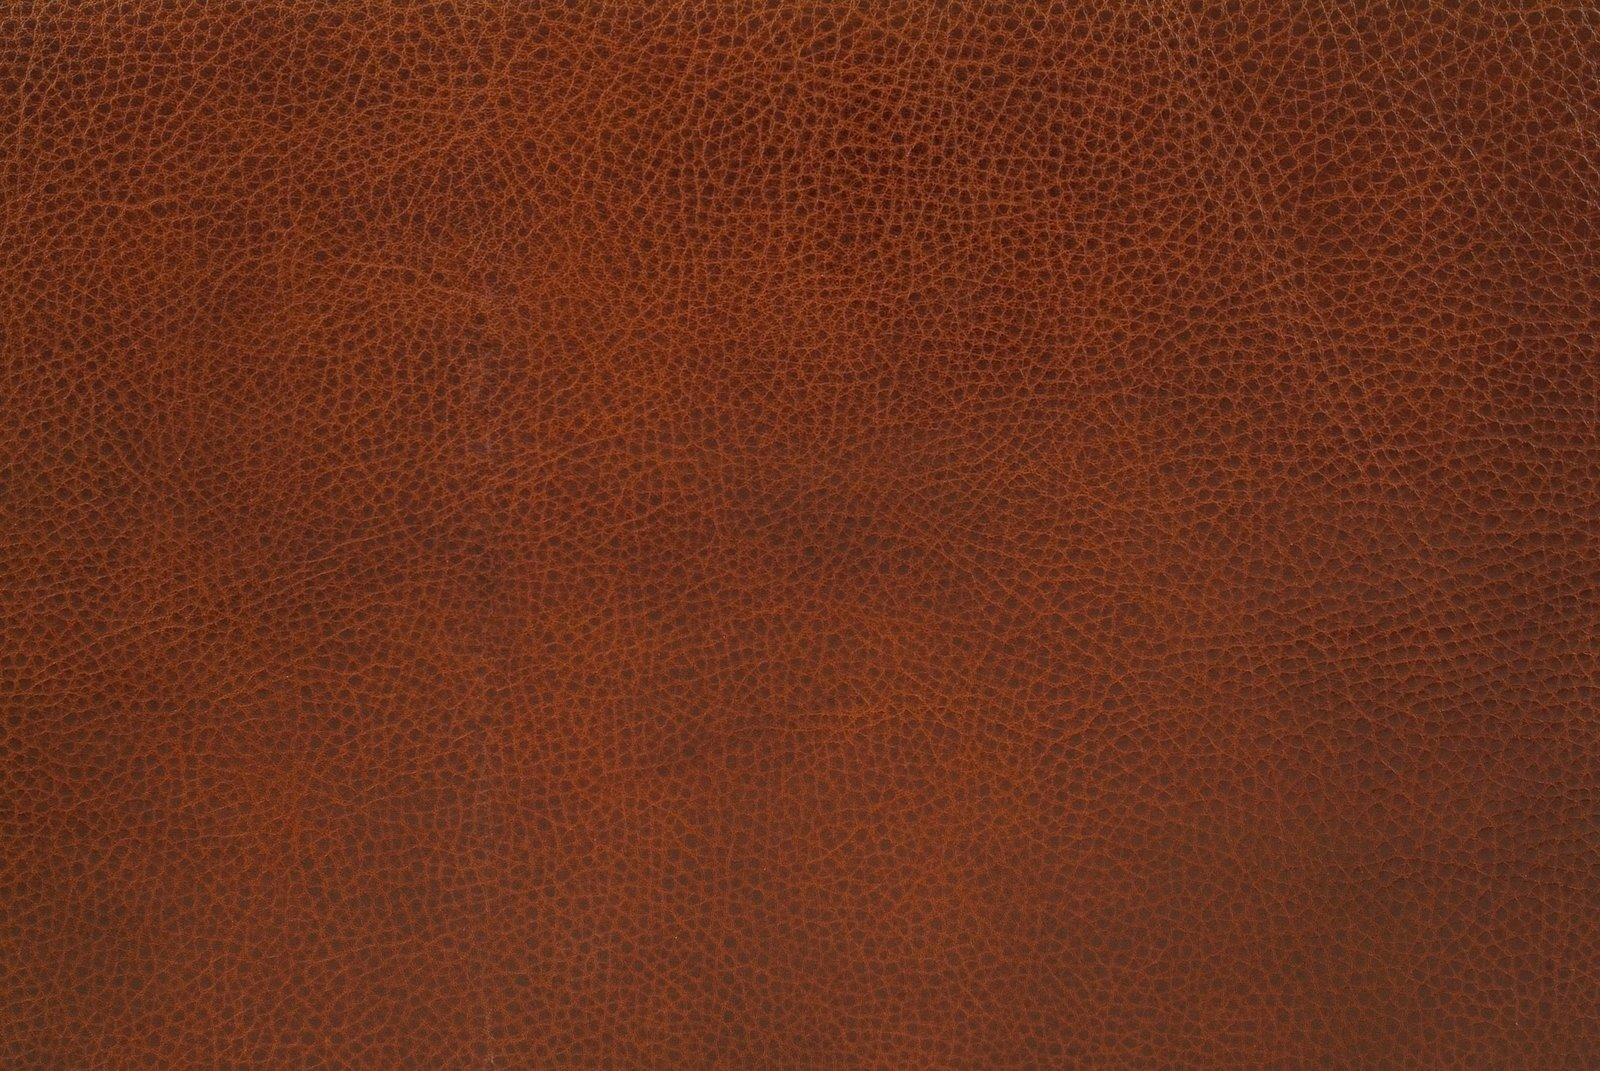 leather texture  background  leather background  leather